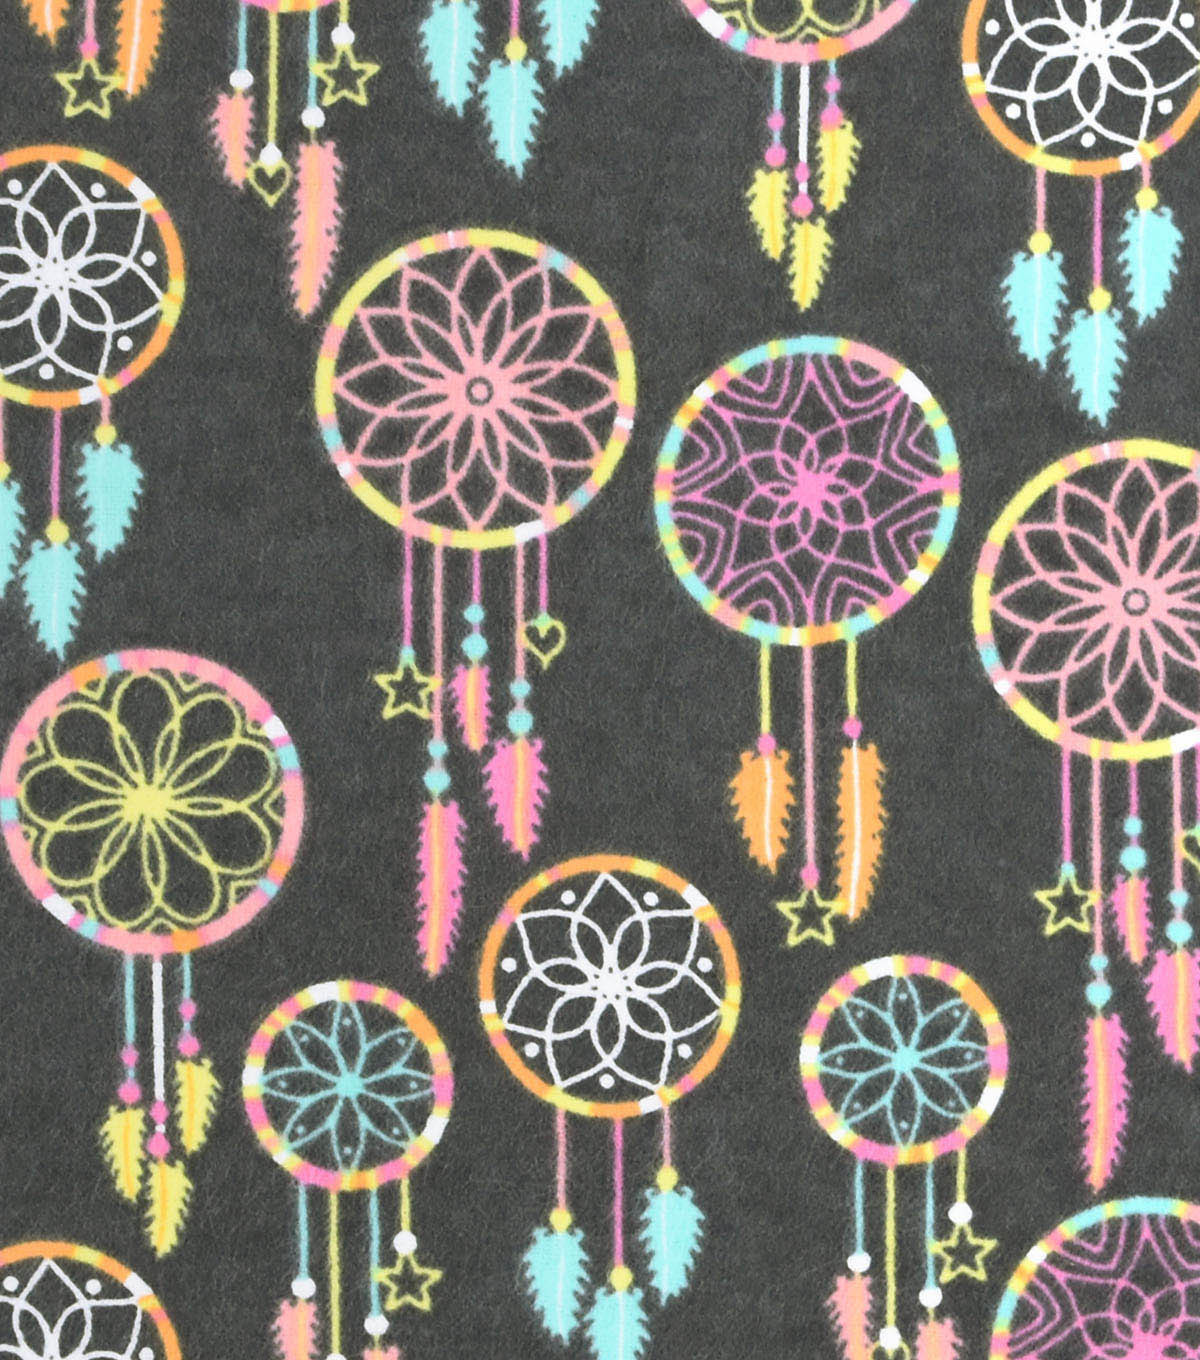 Snuggle Flannel Fabric -Pastel Dream Catchers Gray